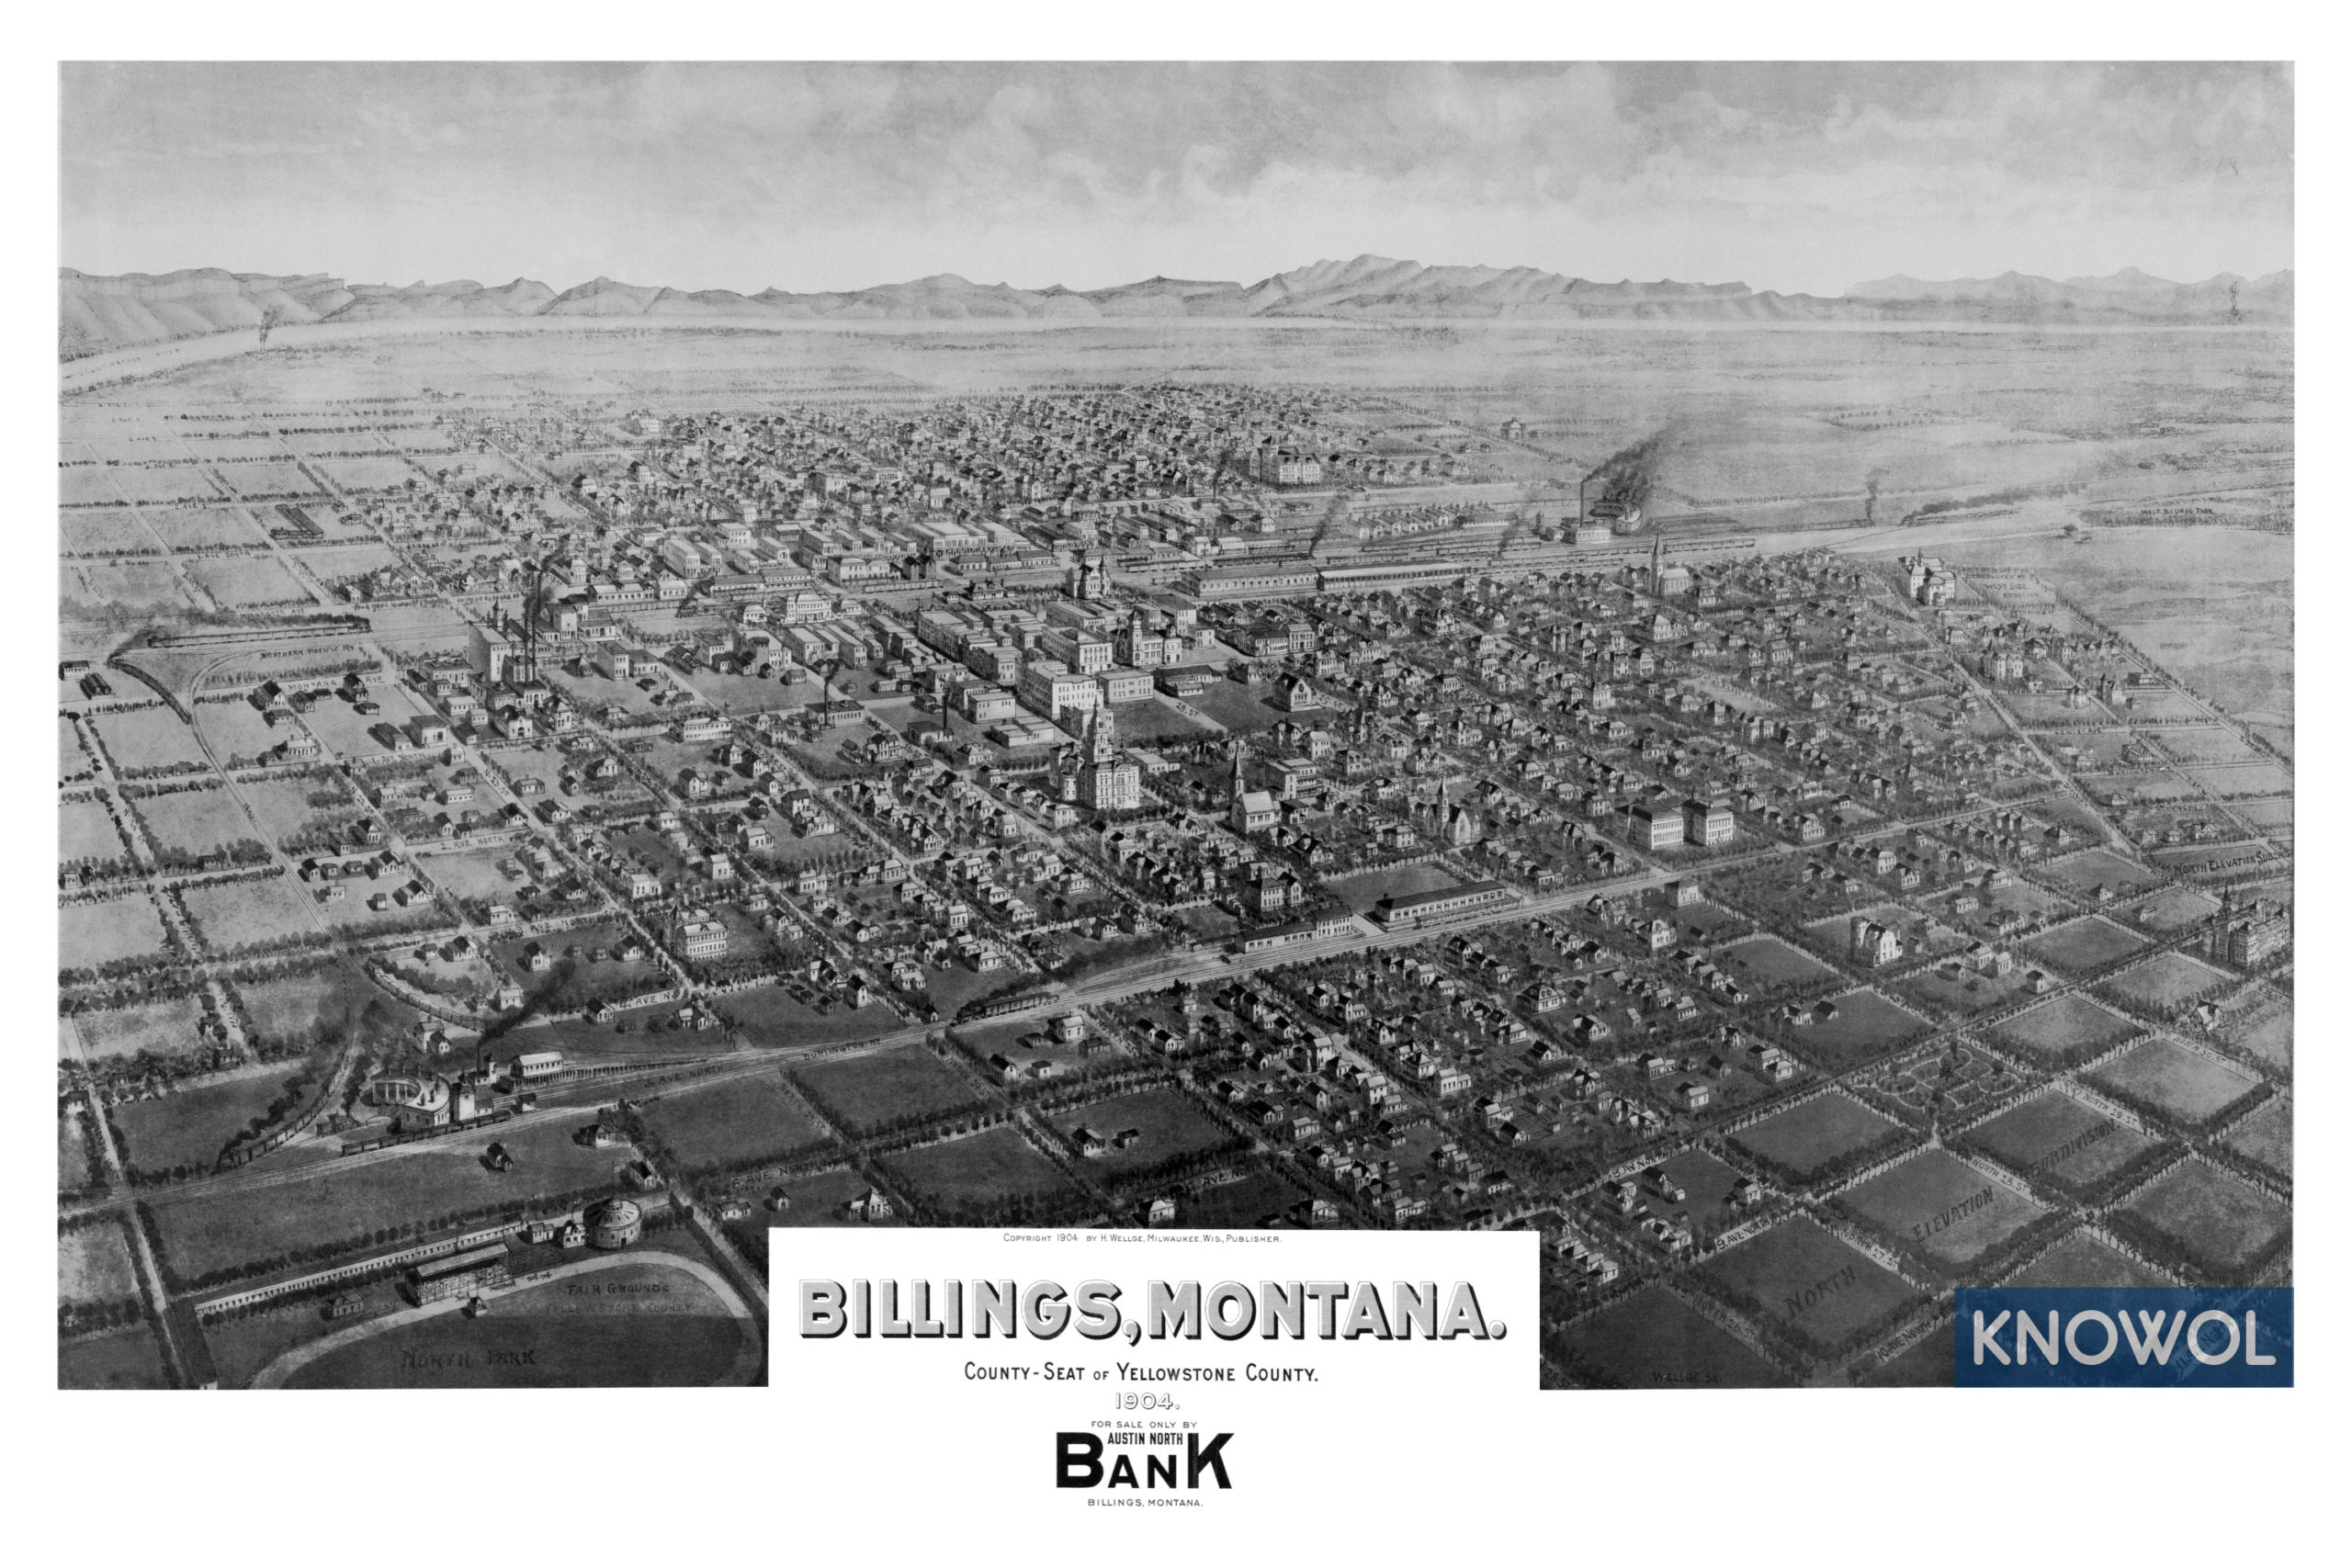 Beautifully detailed map of Billings, Montana from 1904 - KNOWOL